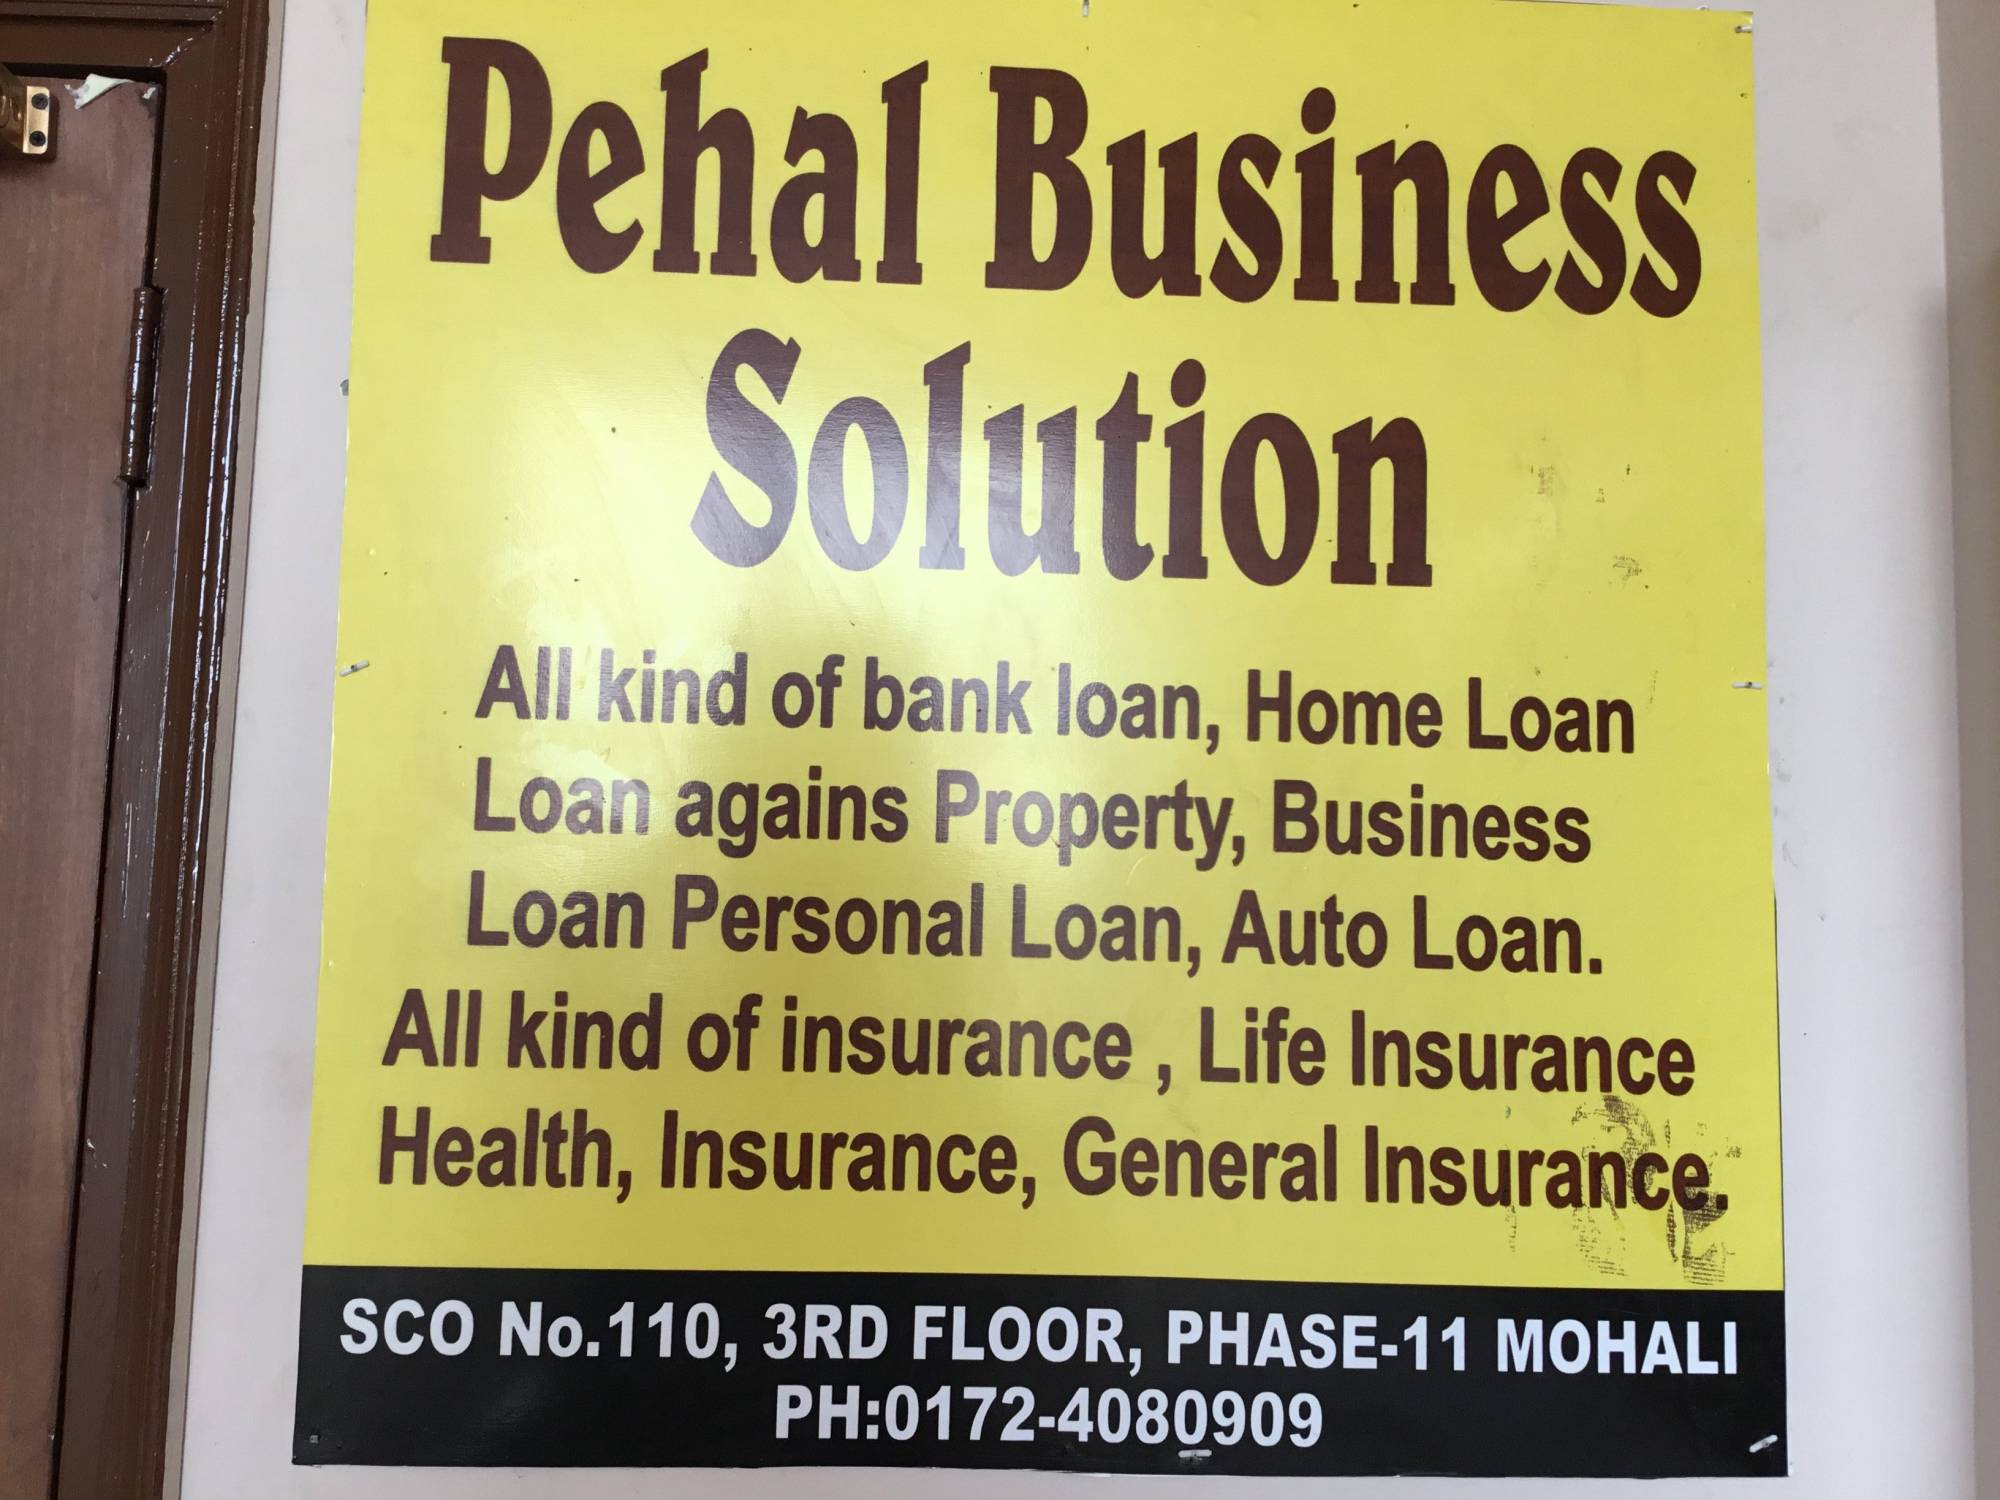 Top 100 Personal Loan Services In Chandigarh Sector 17 Chandigarh